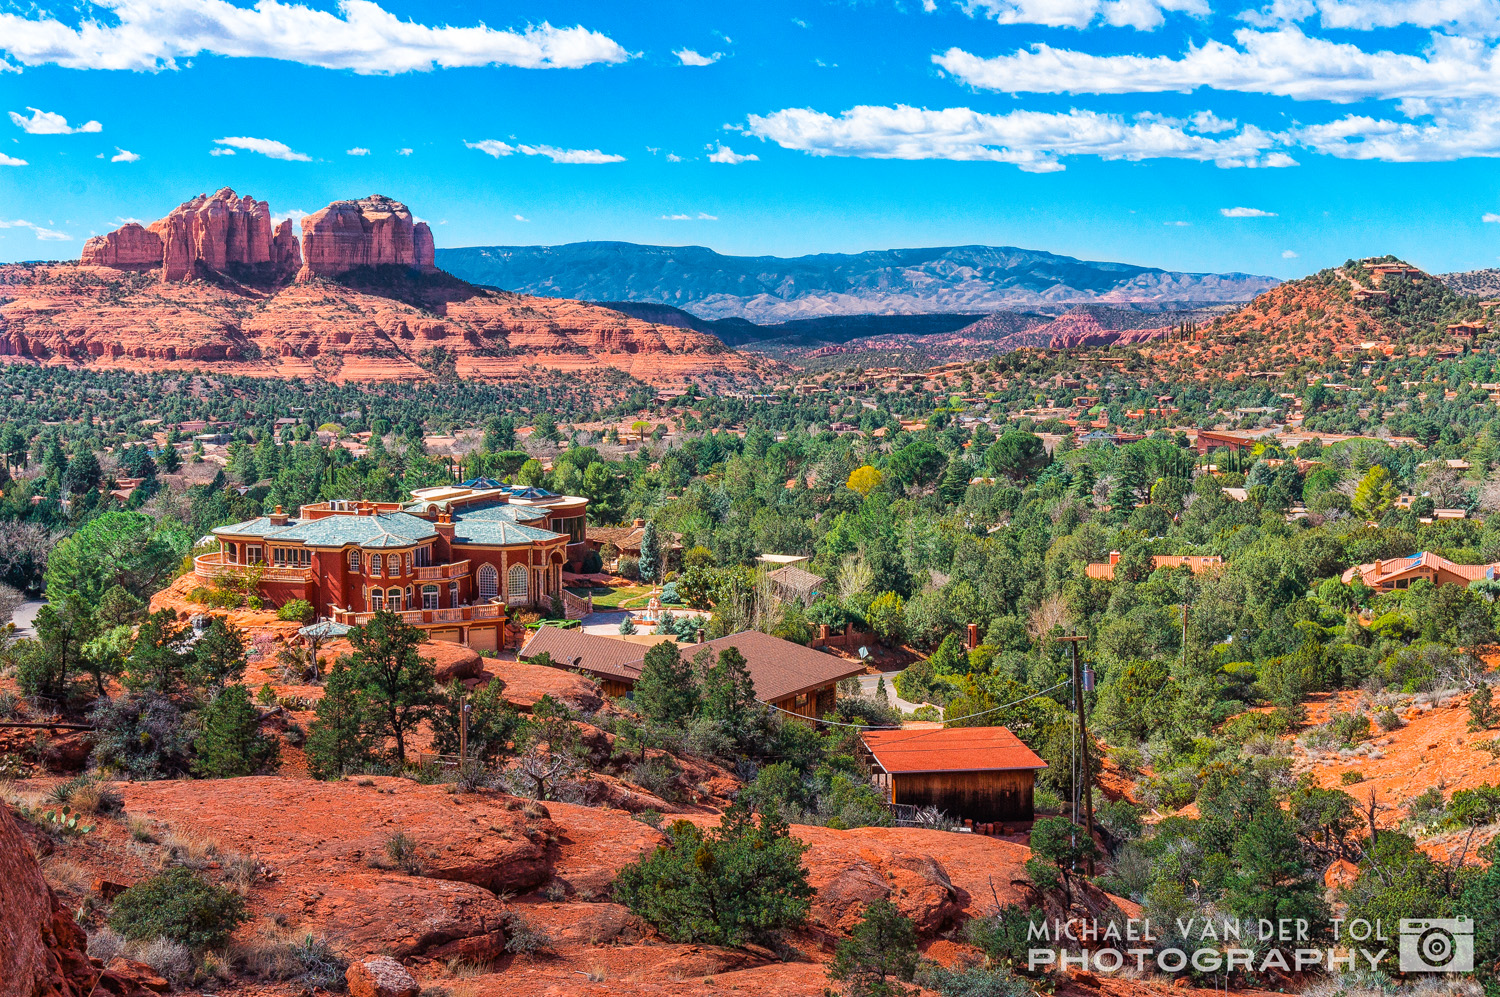 The view looking west from the Chapel of the Holy Cross (Cathedral Rock in the background), Sedona, Arizona, 2016